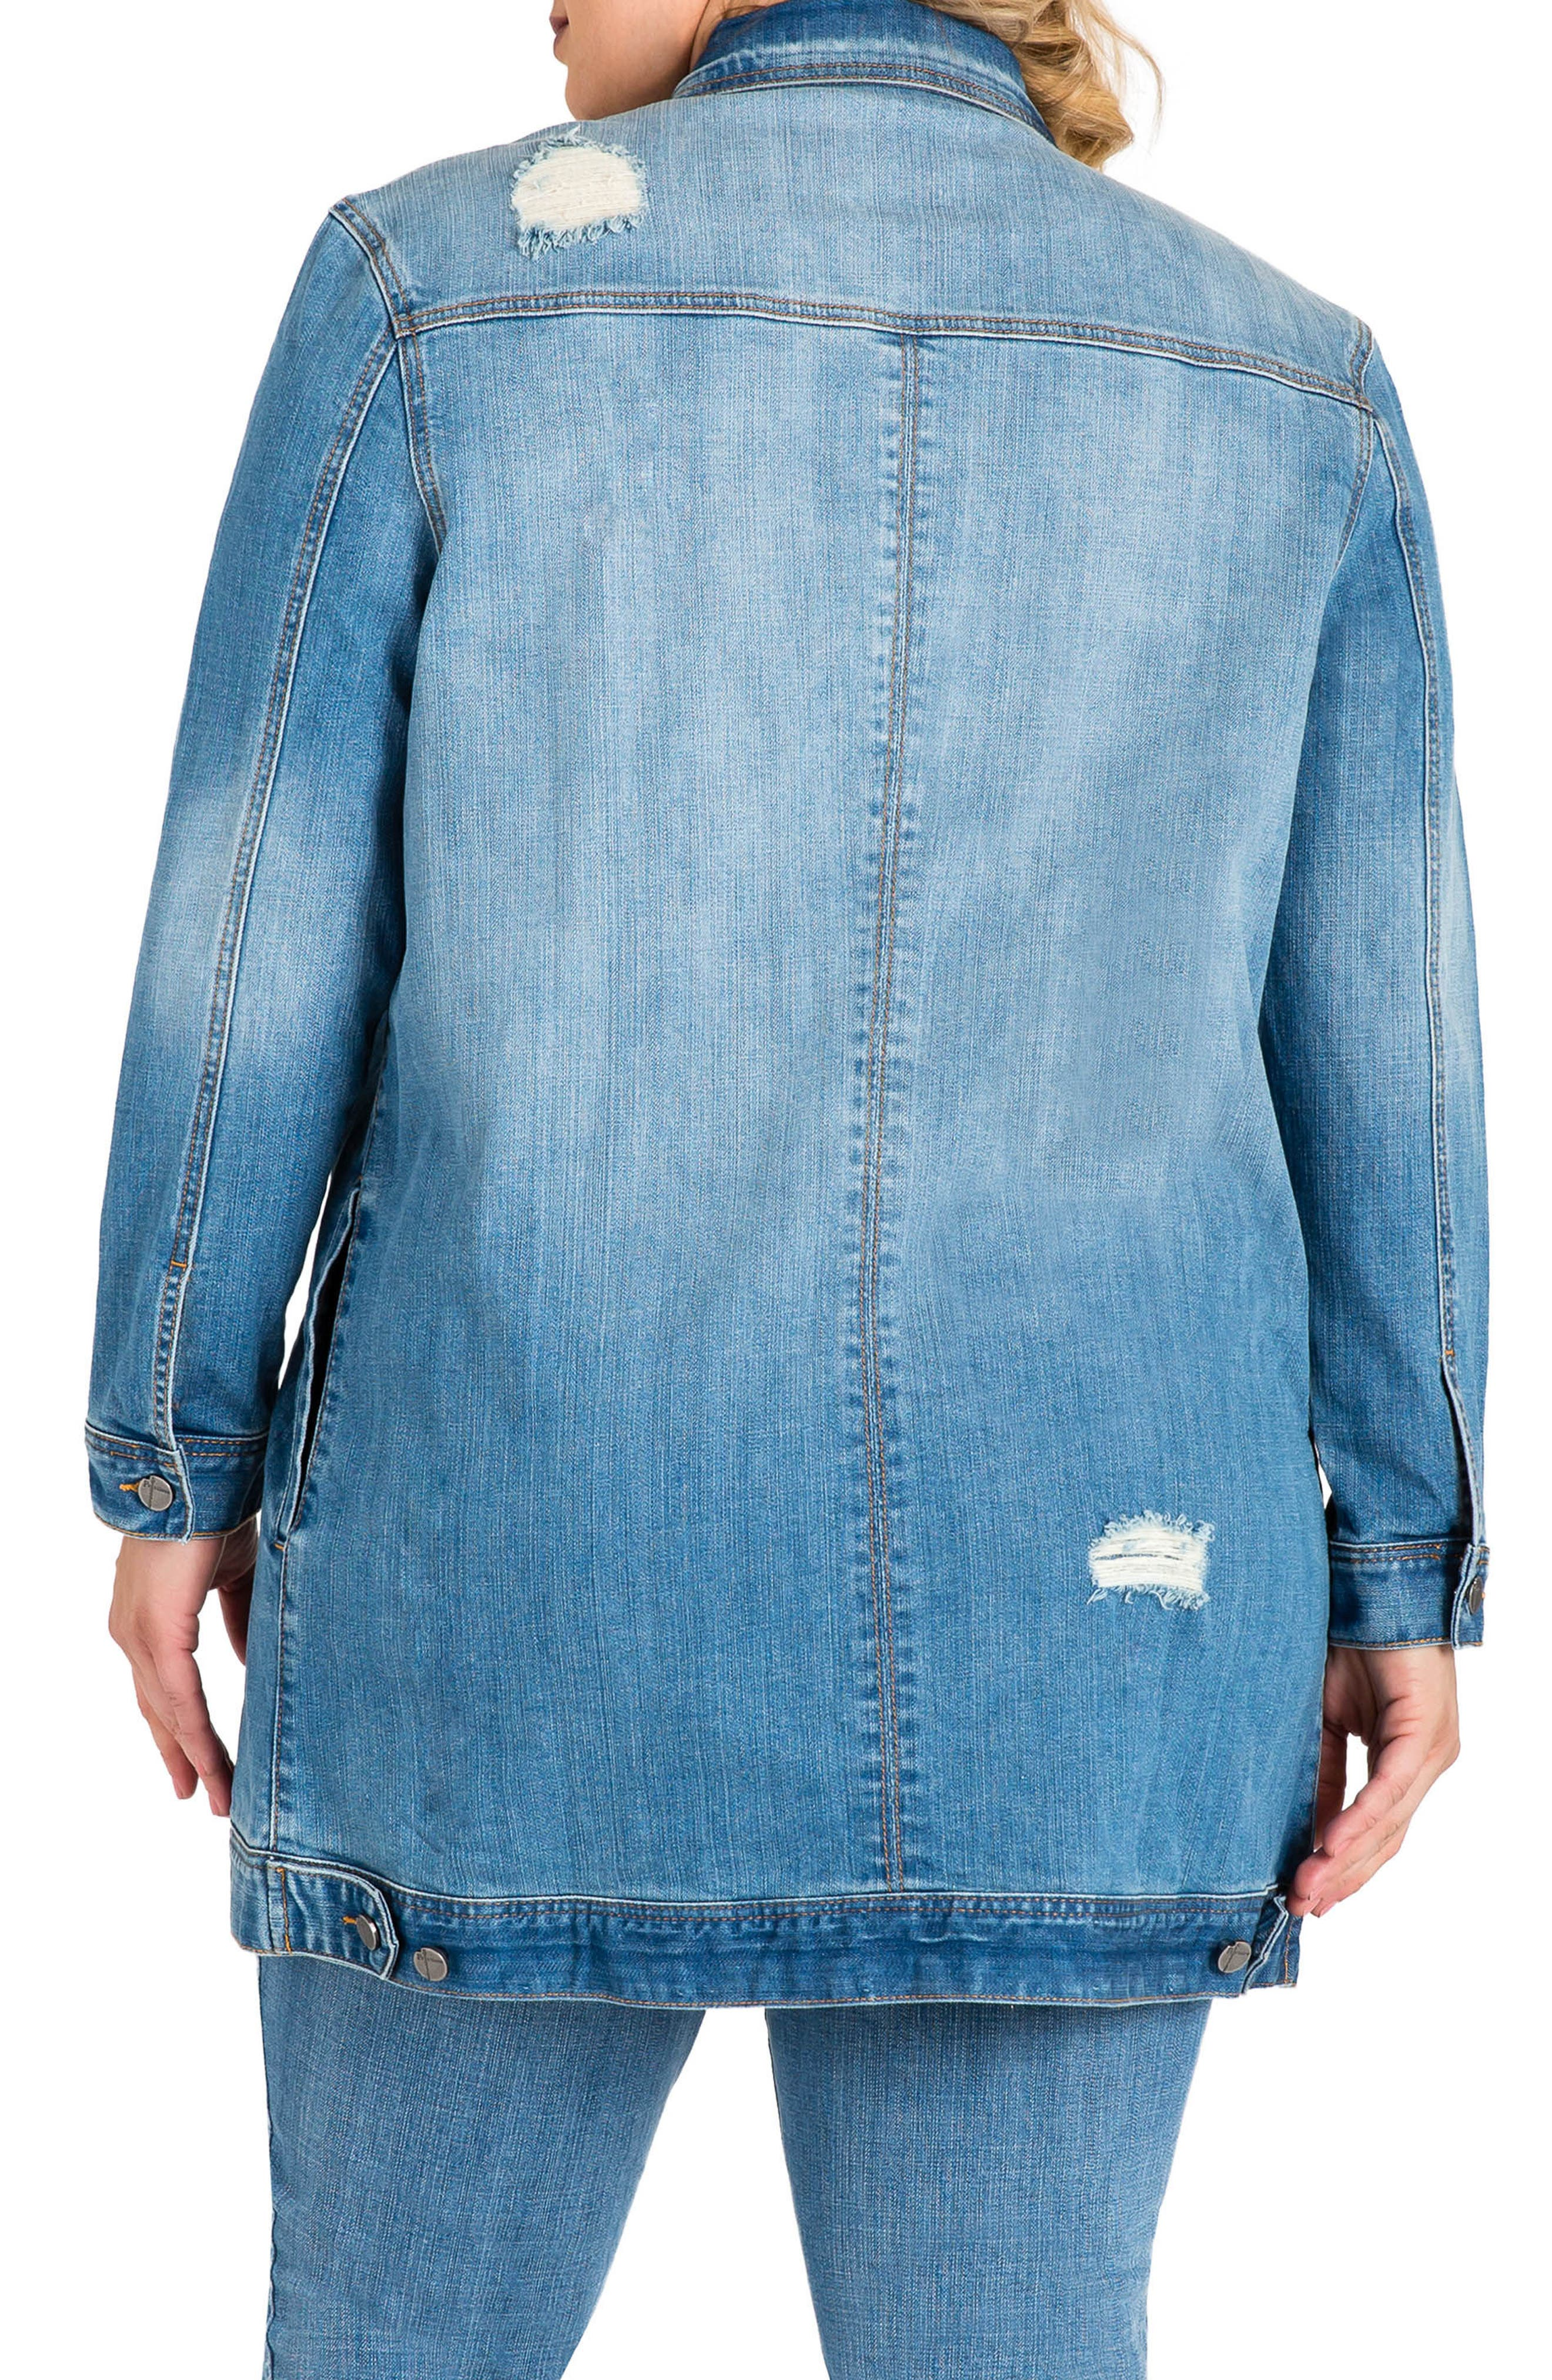 Margot Longline Denim Jacket,                             Alternate thumbnail 2, color,                             LIGHT BLUE